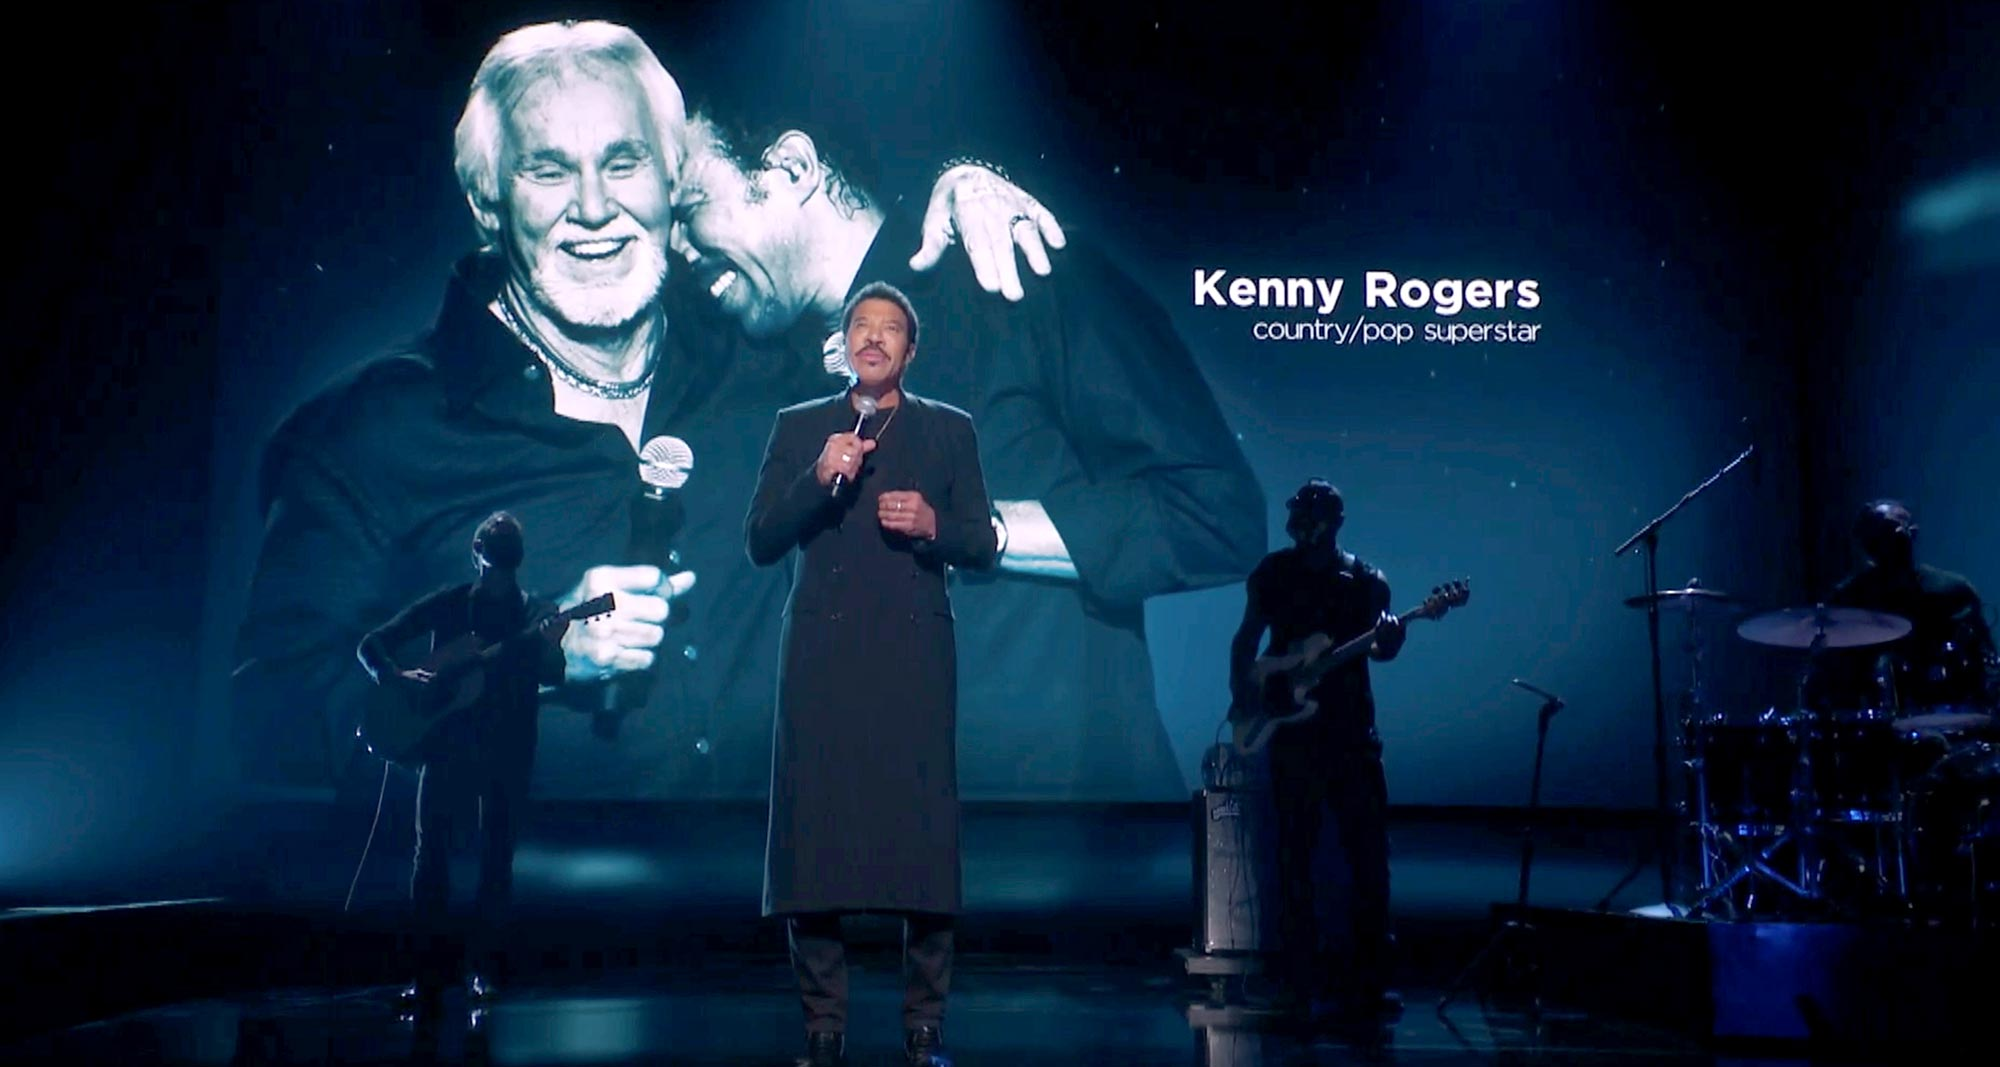 Lionel Richie performs during a tribute to the late Kenny Rogers